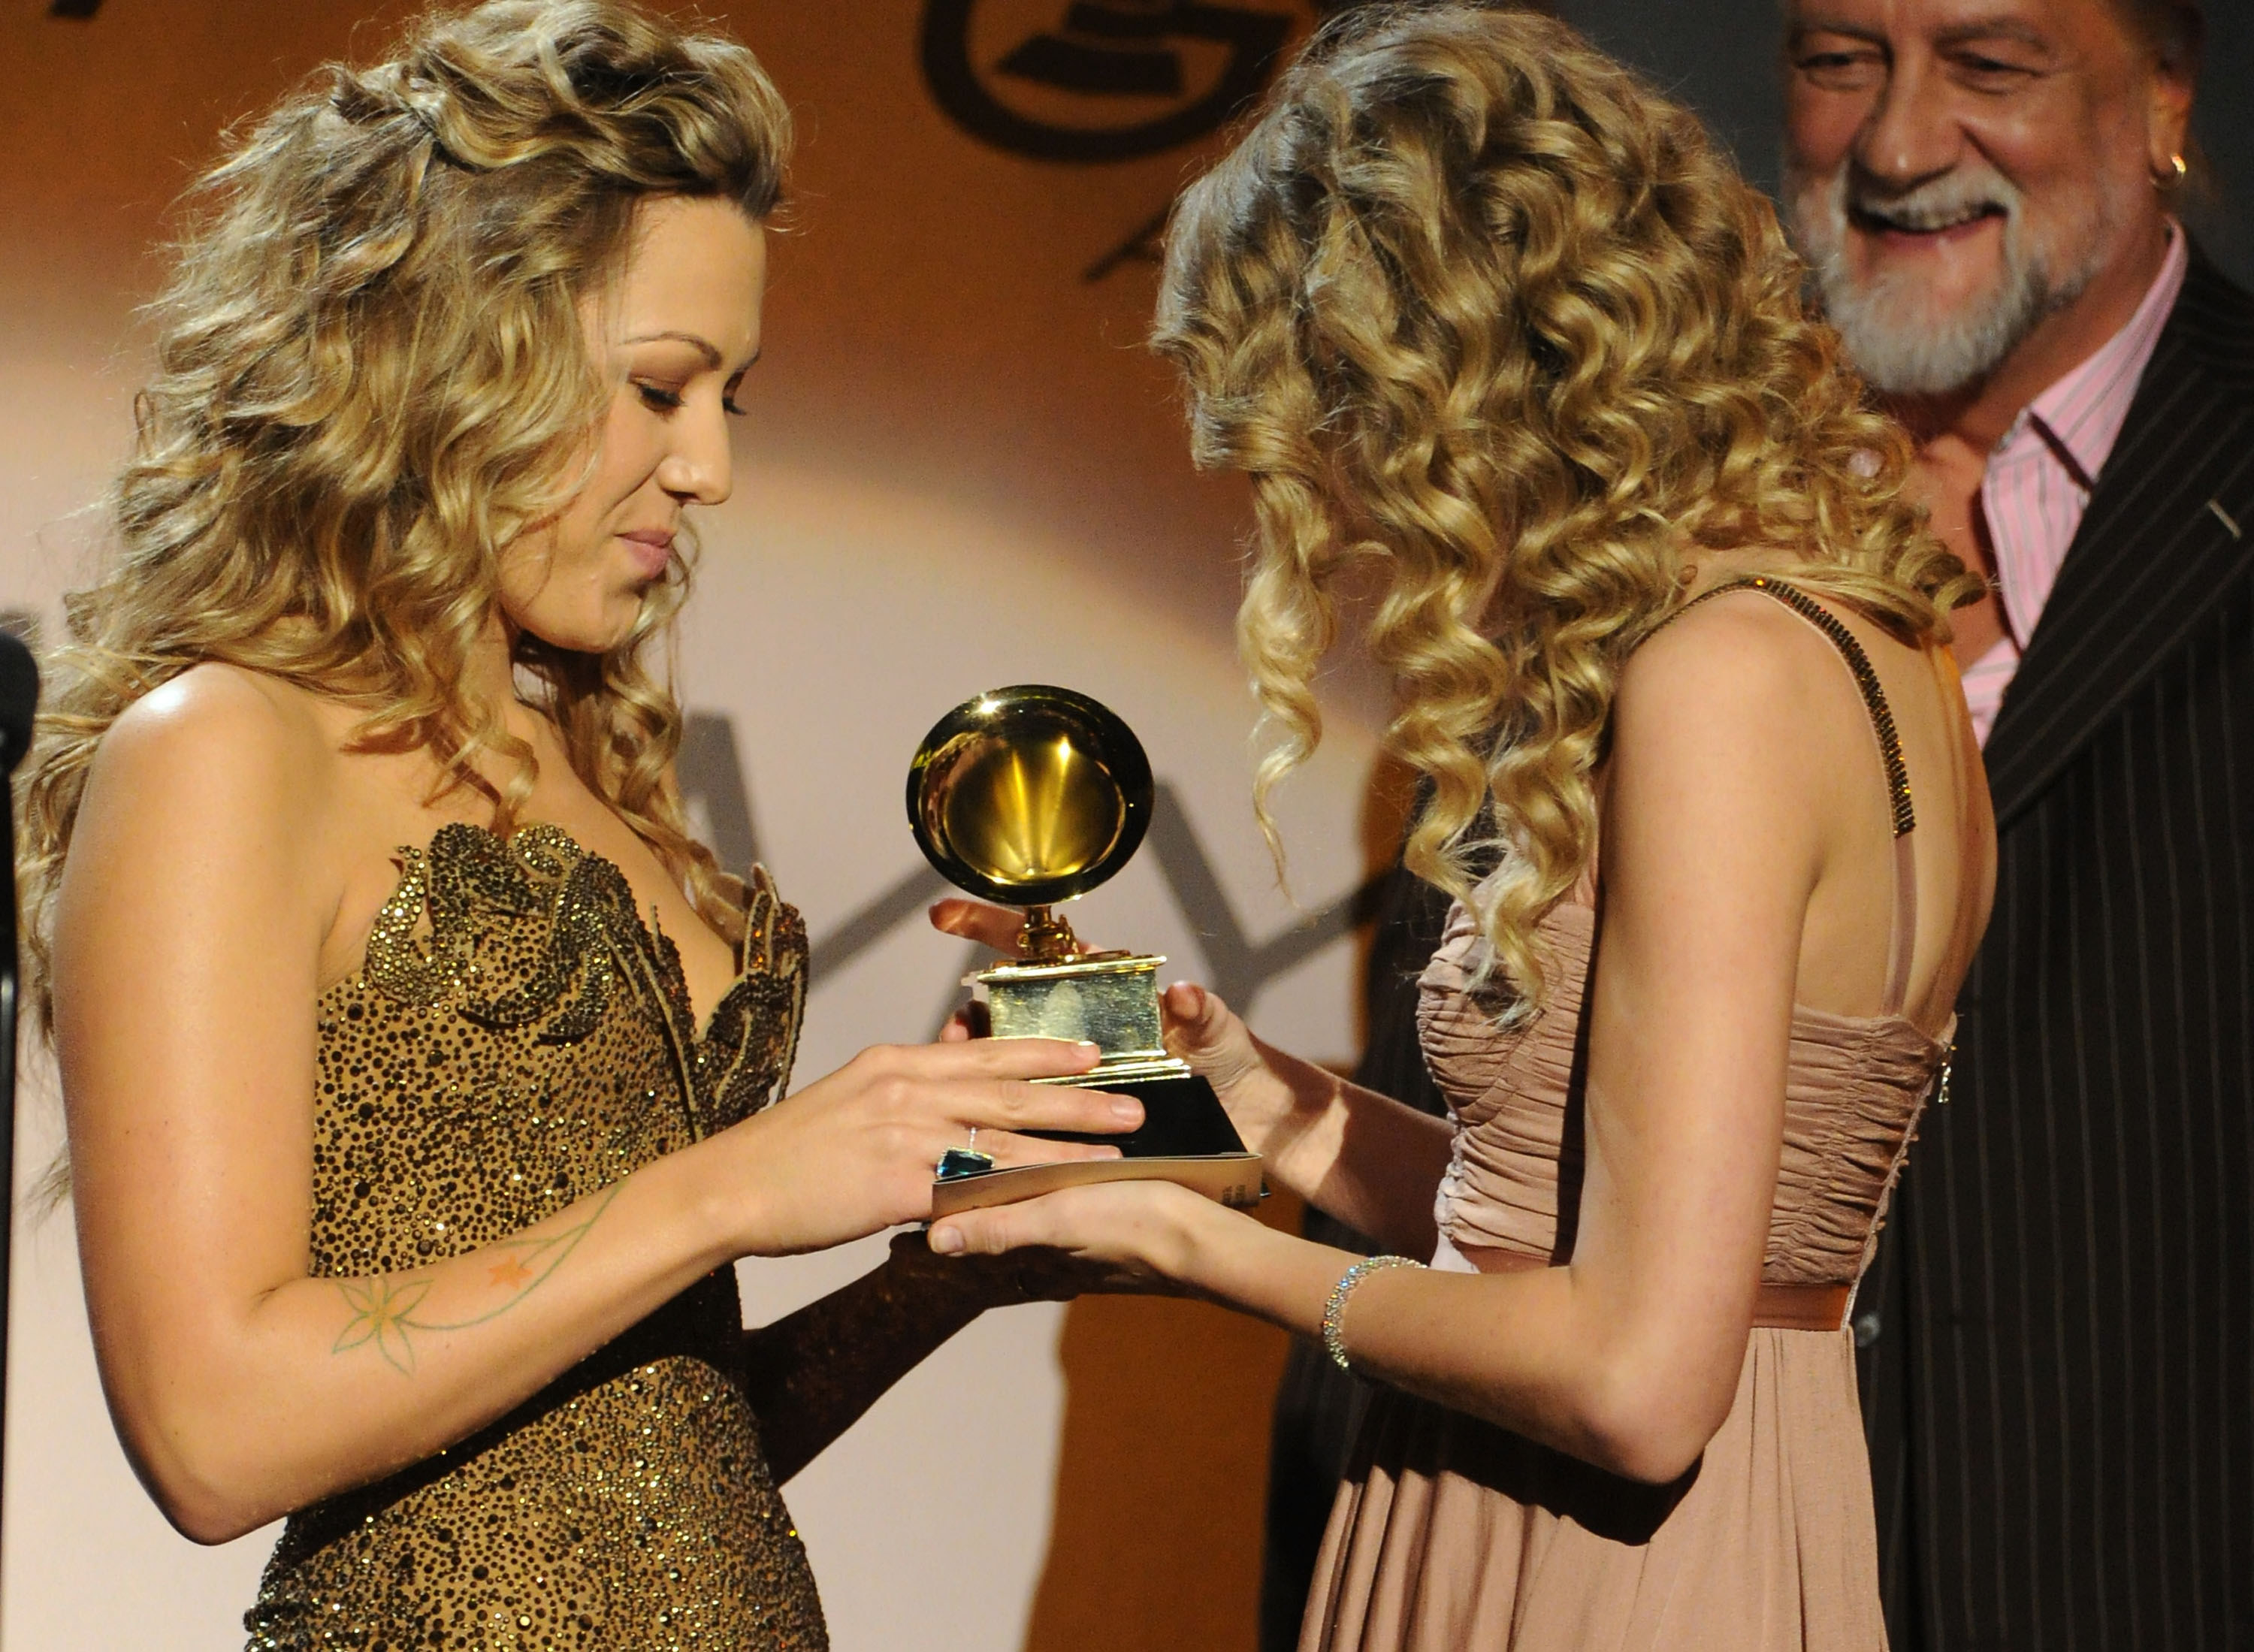 Colbie Caillat and Taylor Swift onstage at an awards ceremony